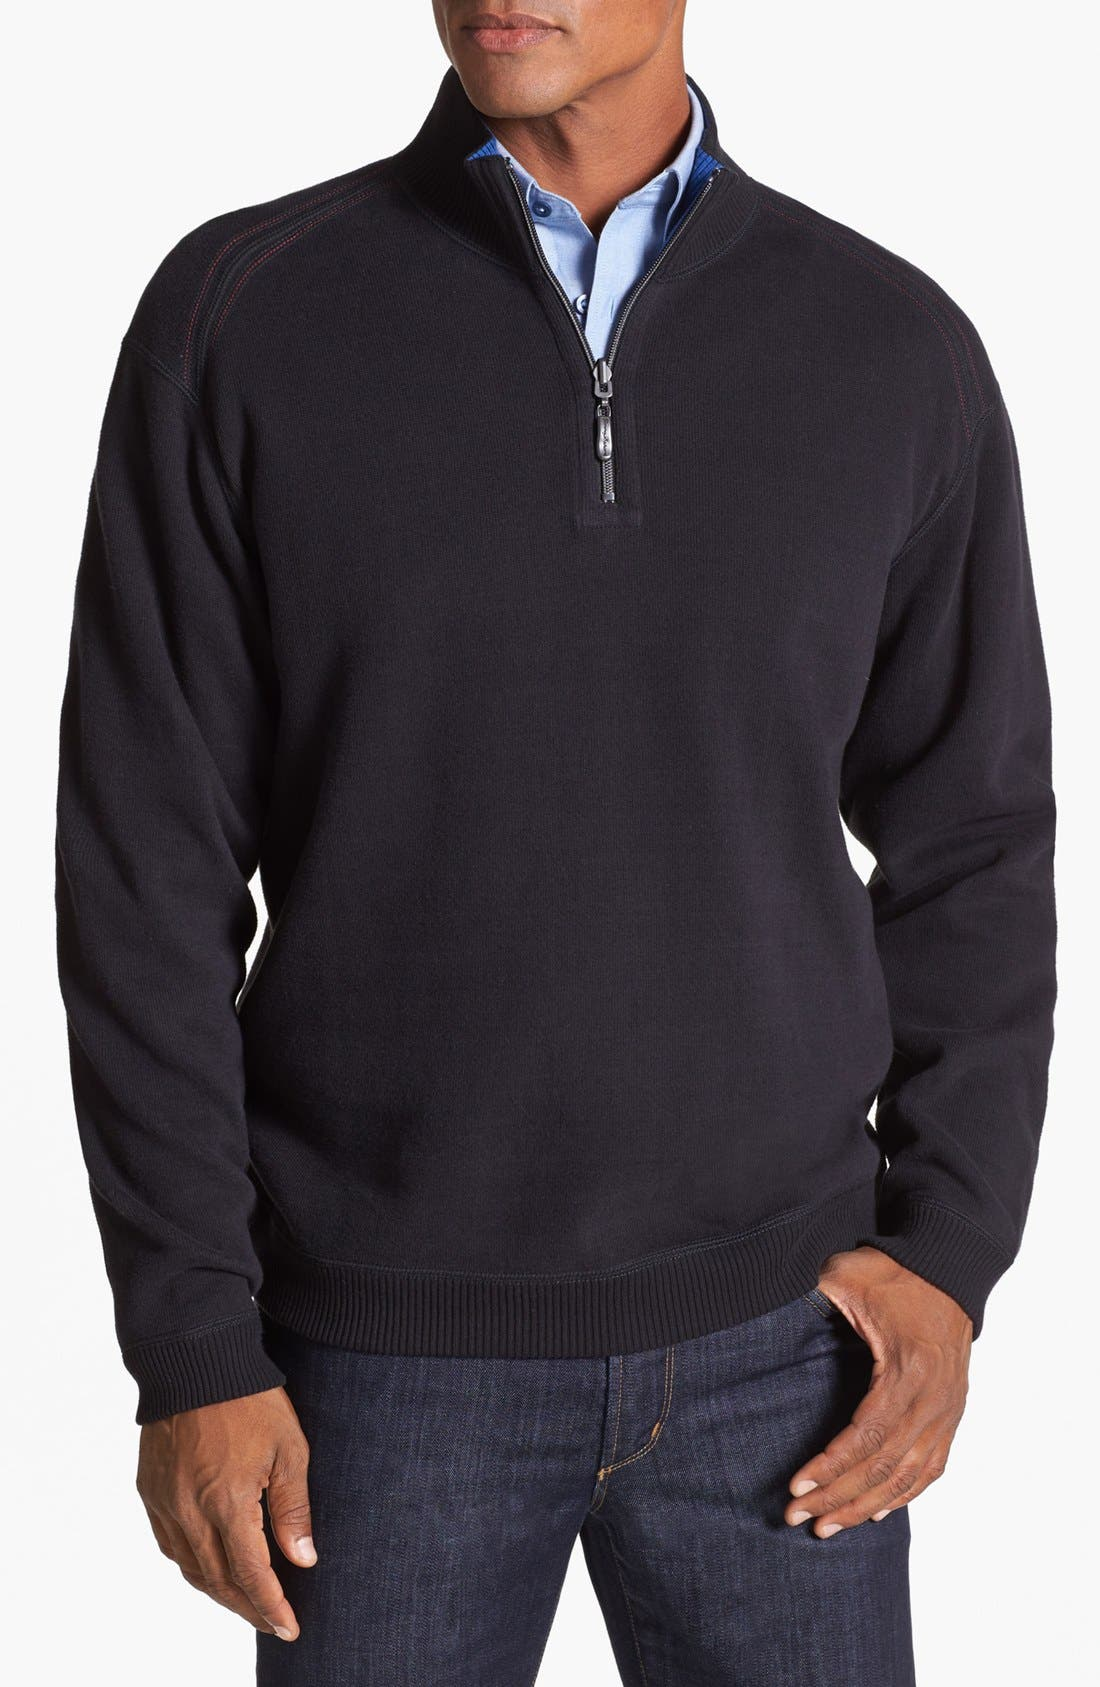 Alternate Image 1 Selected - Tommy Bahama 'Flip Side Pro' Half Zip Pullover (Big & Tall)